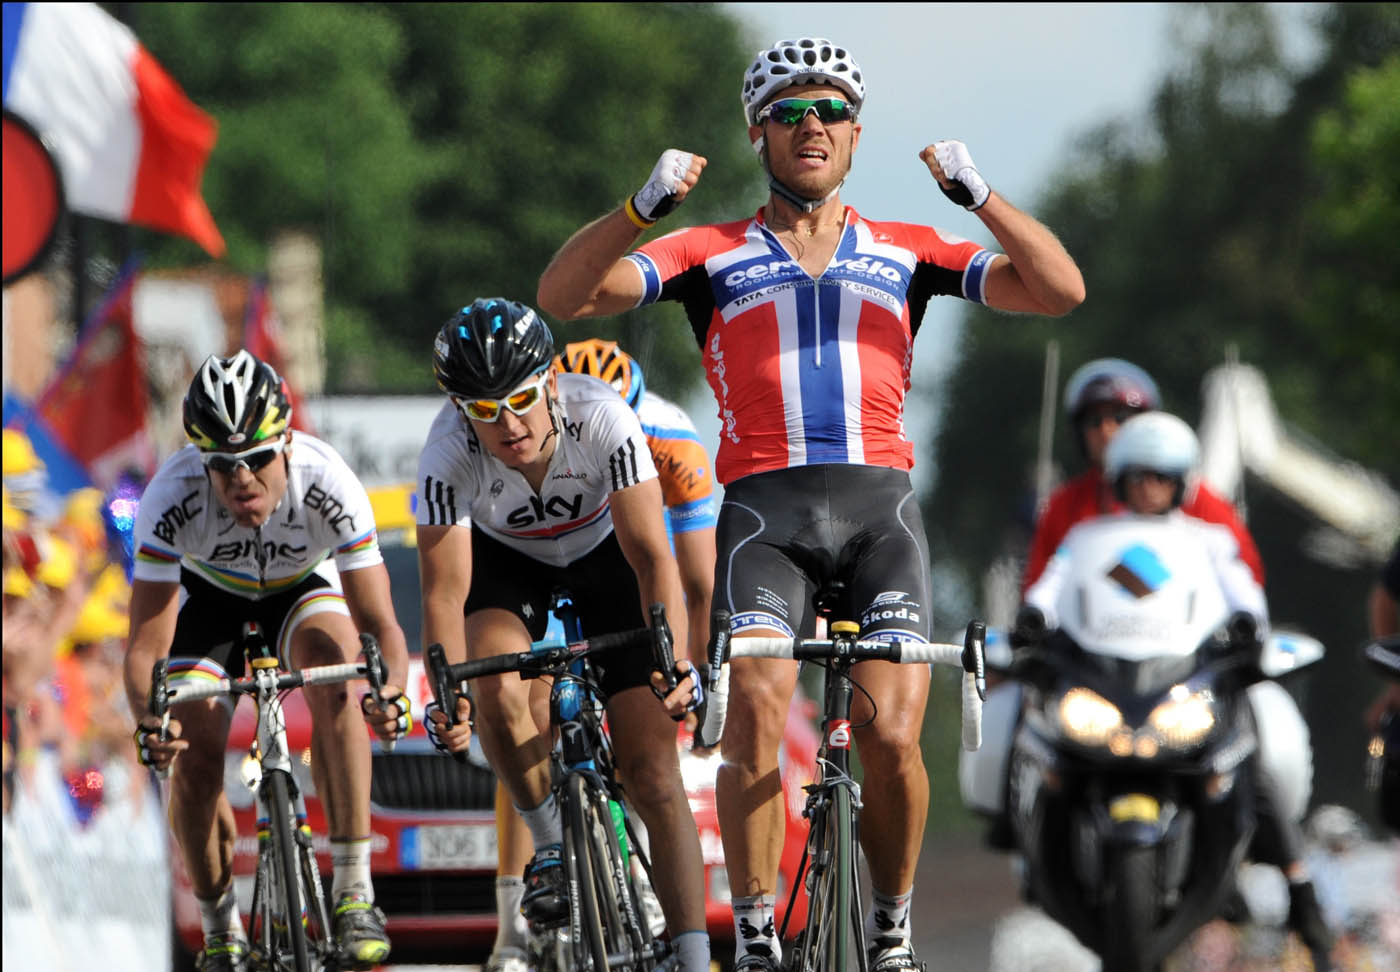 Thor Hushovd wins Tour de France 2010 stage 3